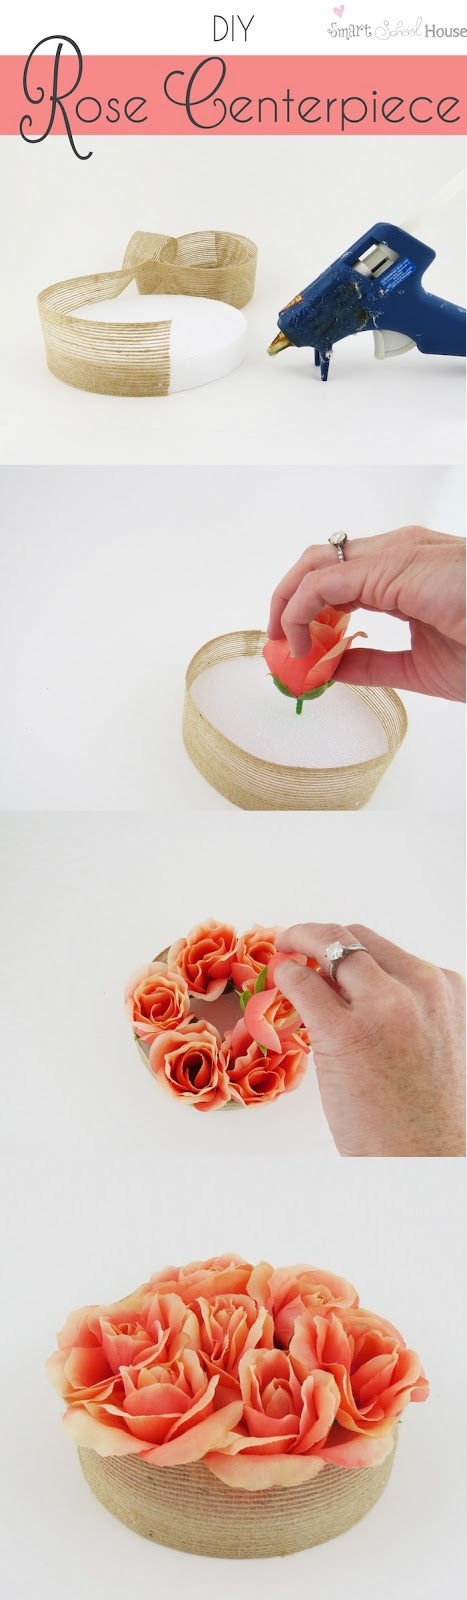 Rose Centerpiece #DIY